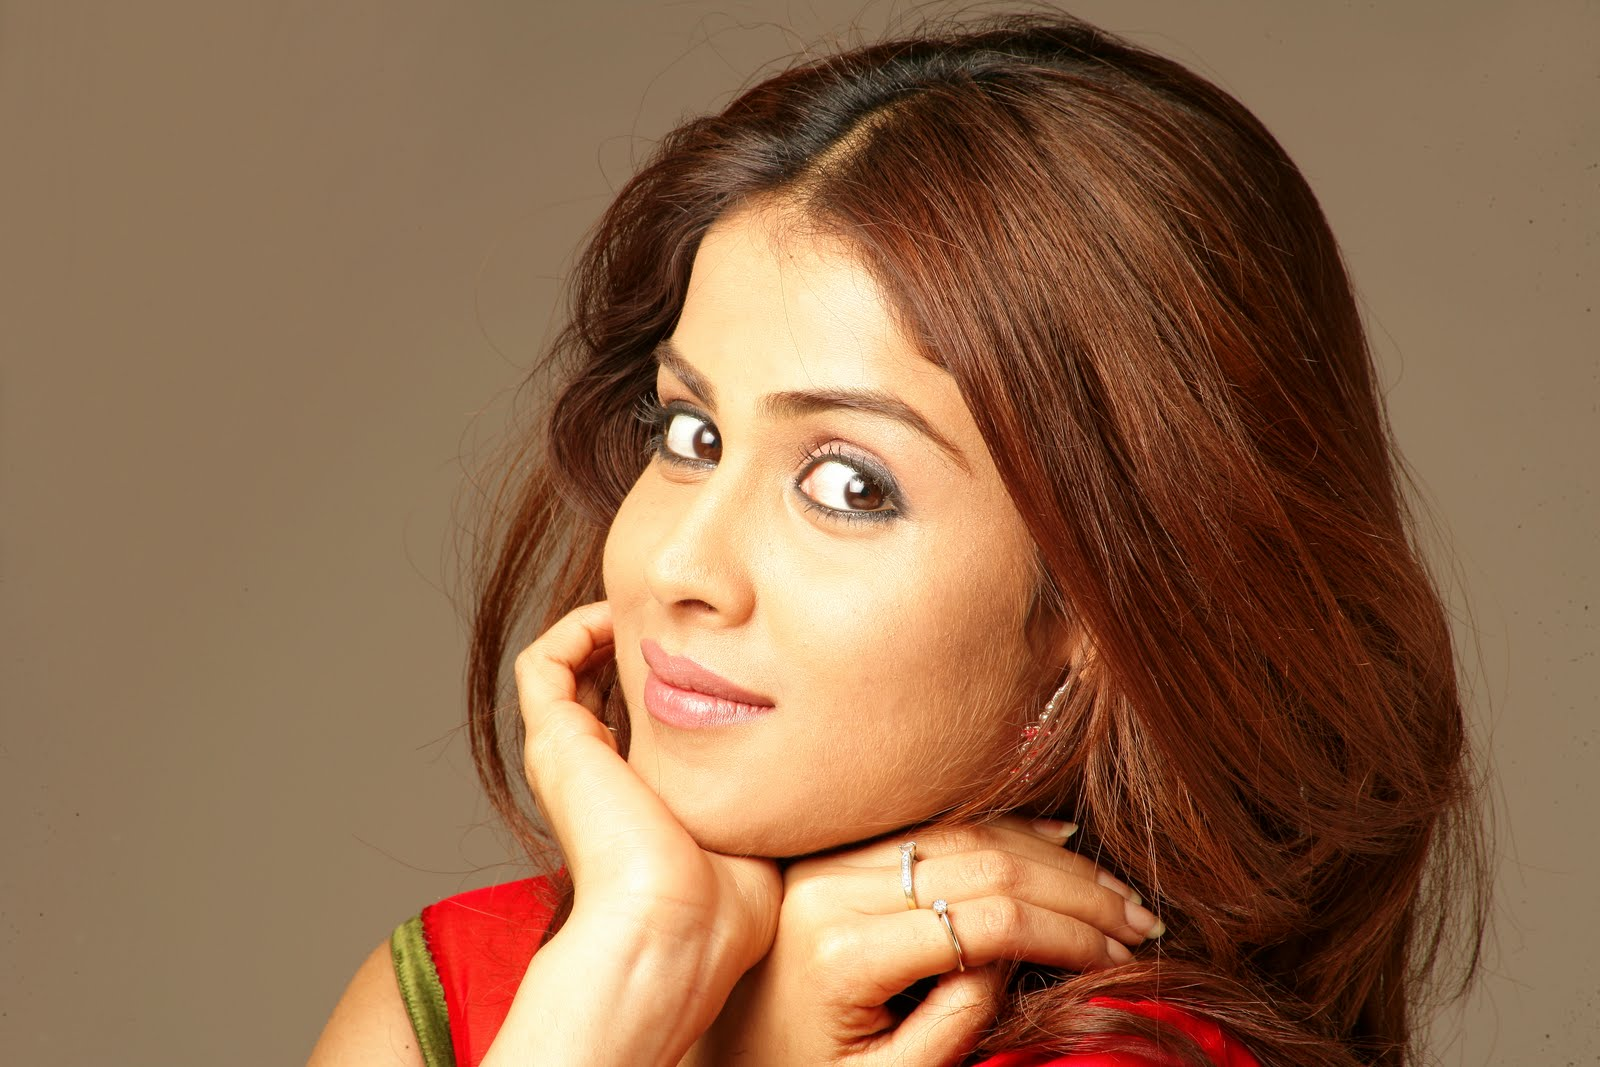 genelia: genelia photoshot hd resolution